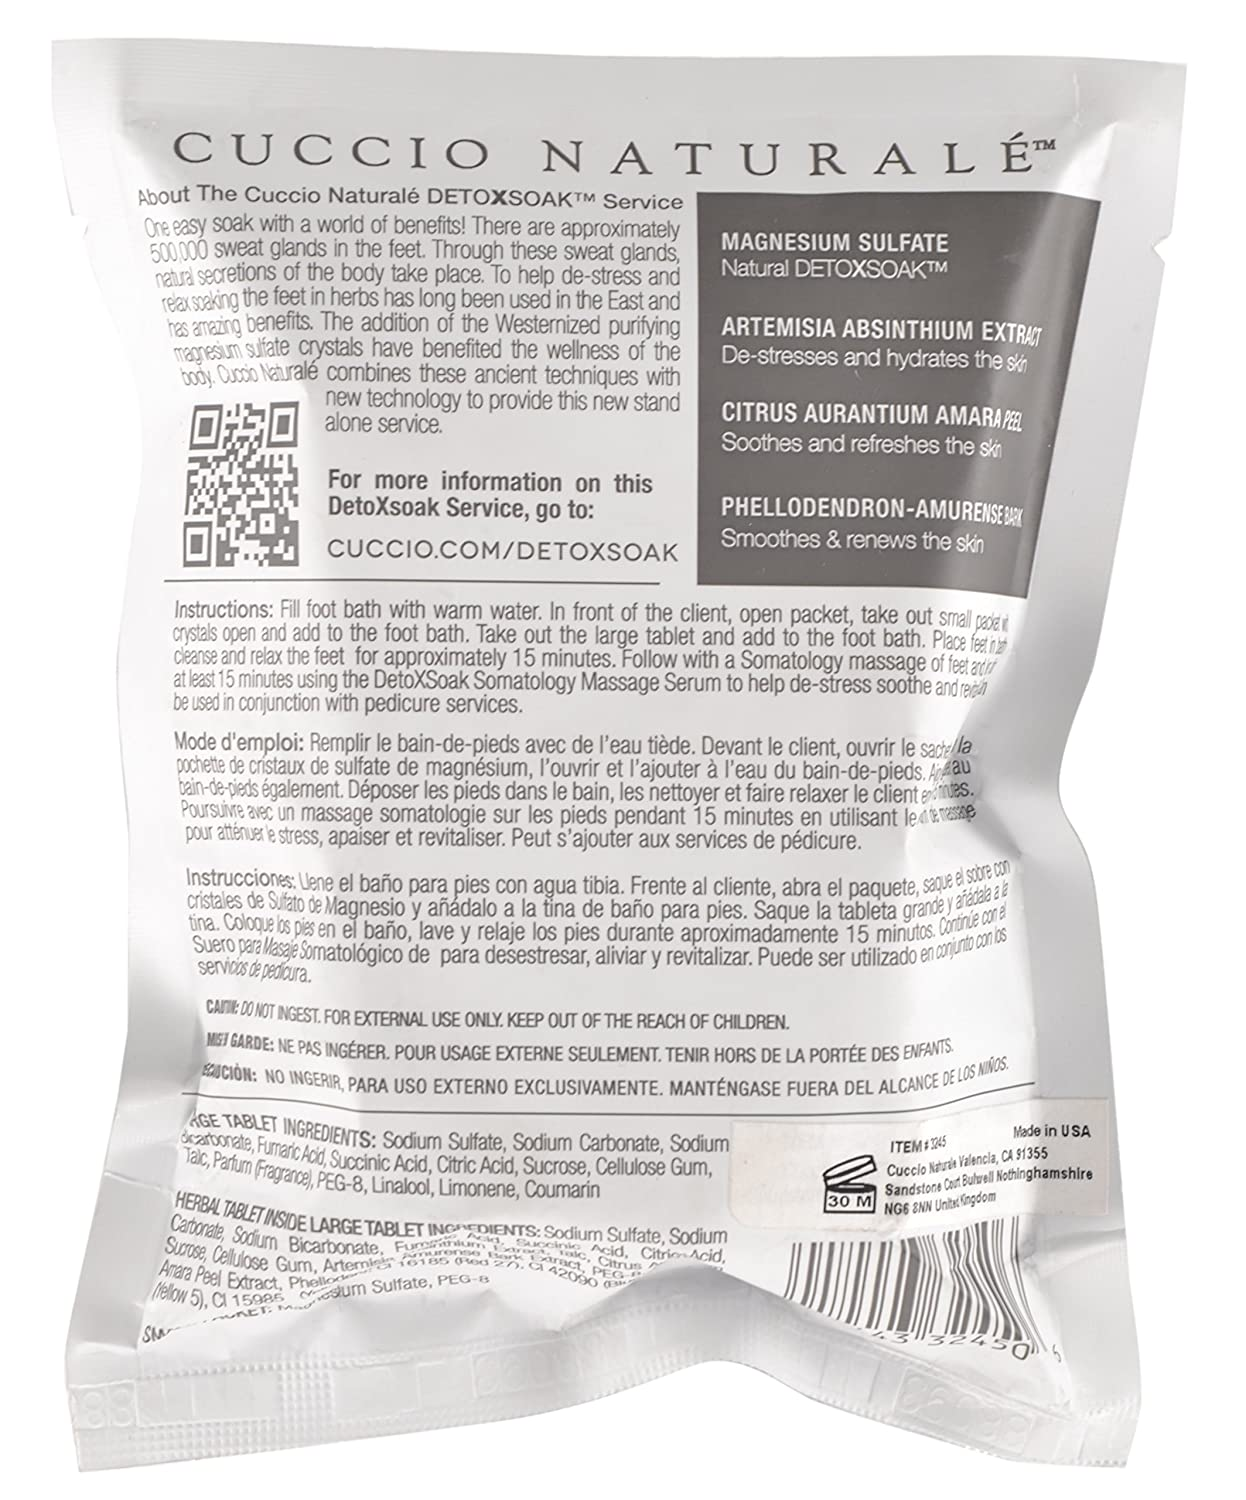 Amazon.com: Cuccio Naturale DetoxSoak, 6.3 oz - Individual Packet: Health & Personal Care